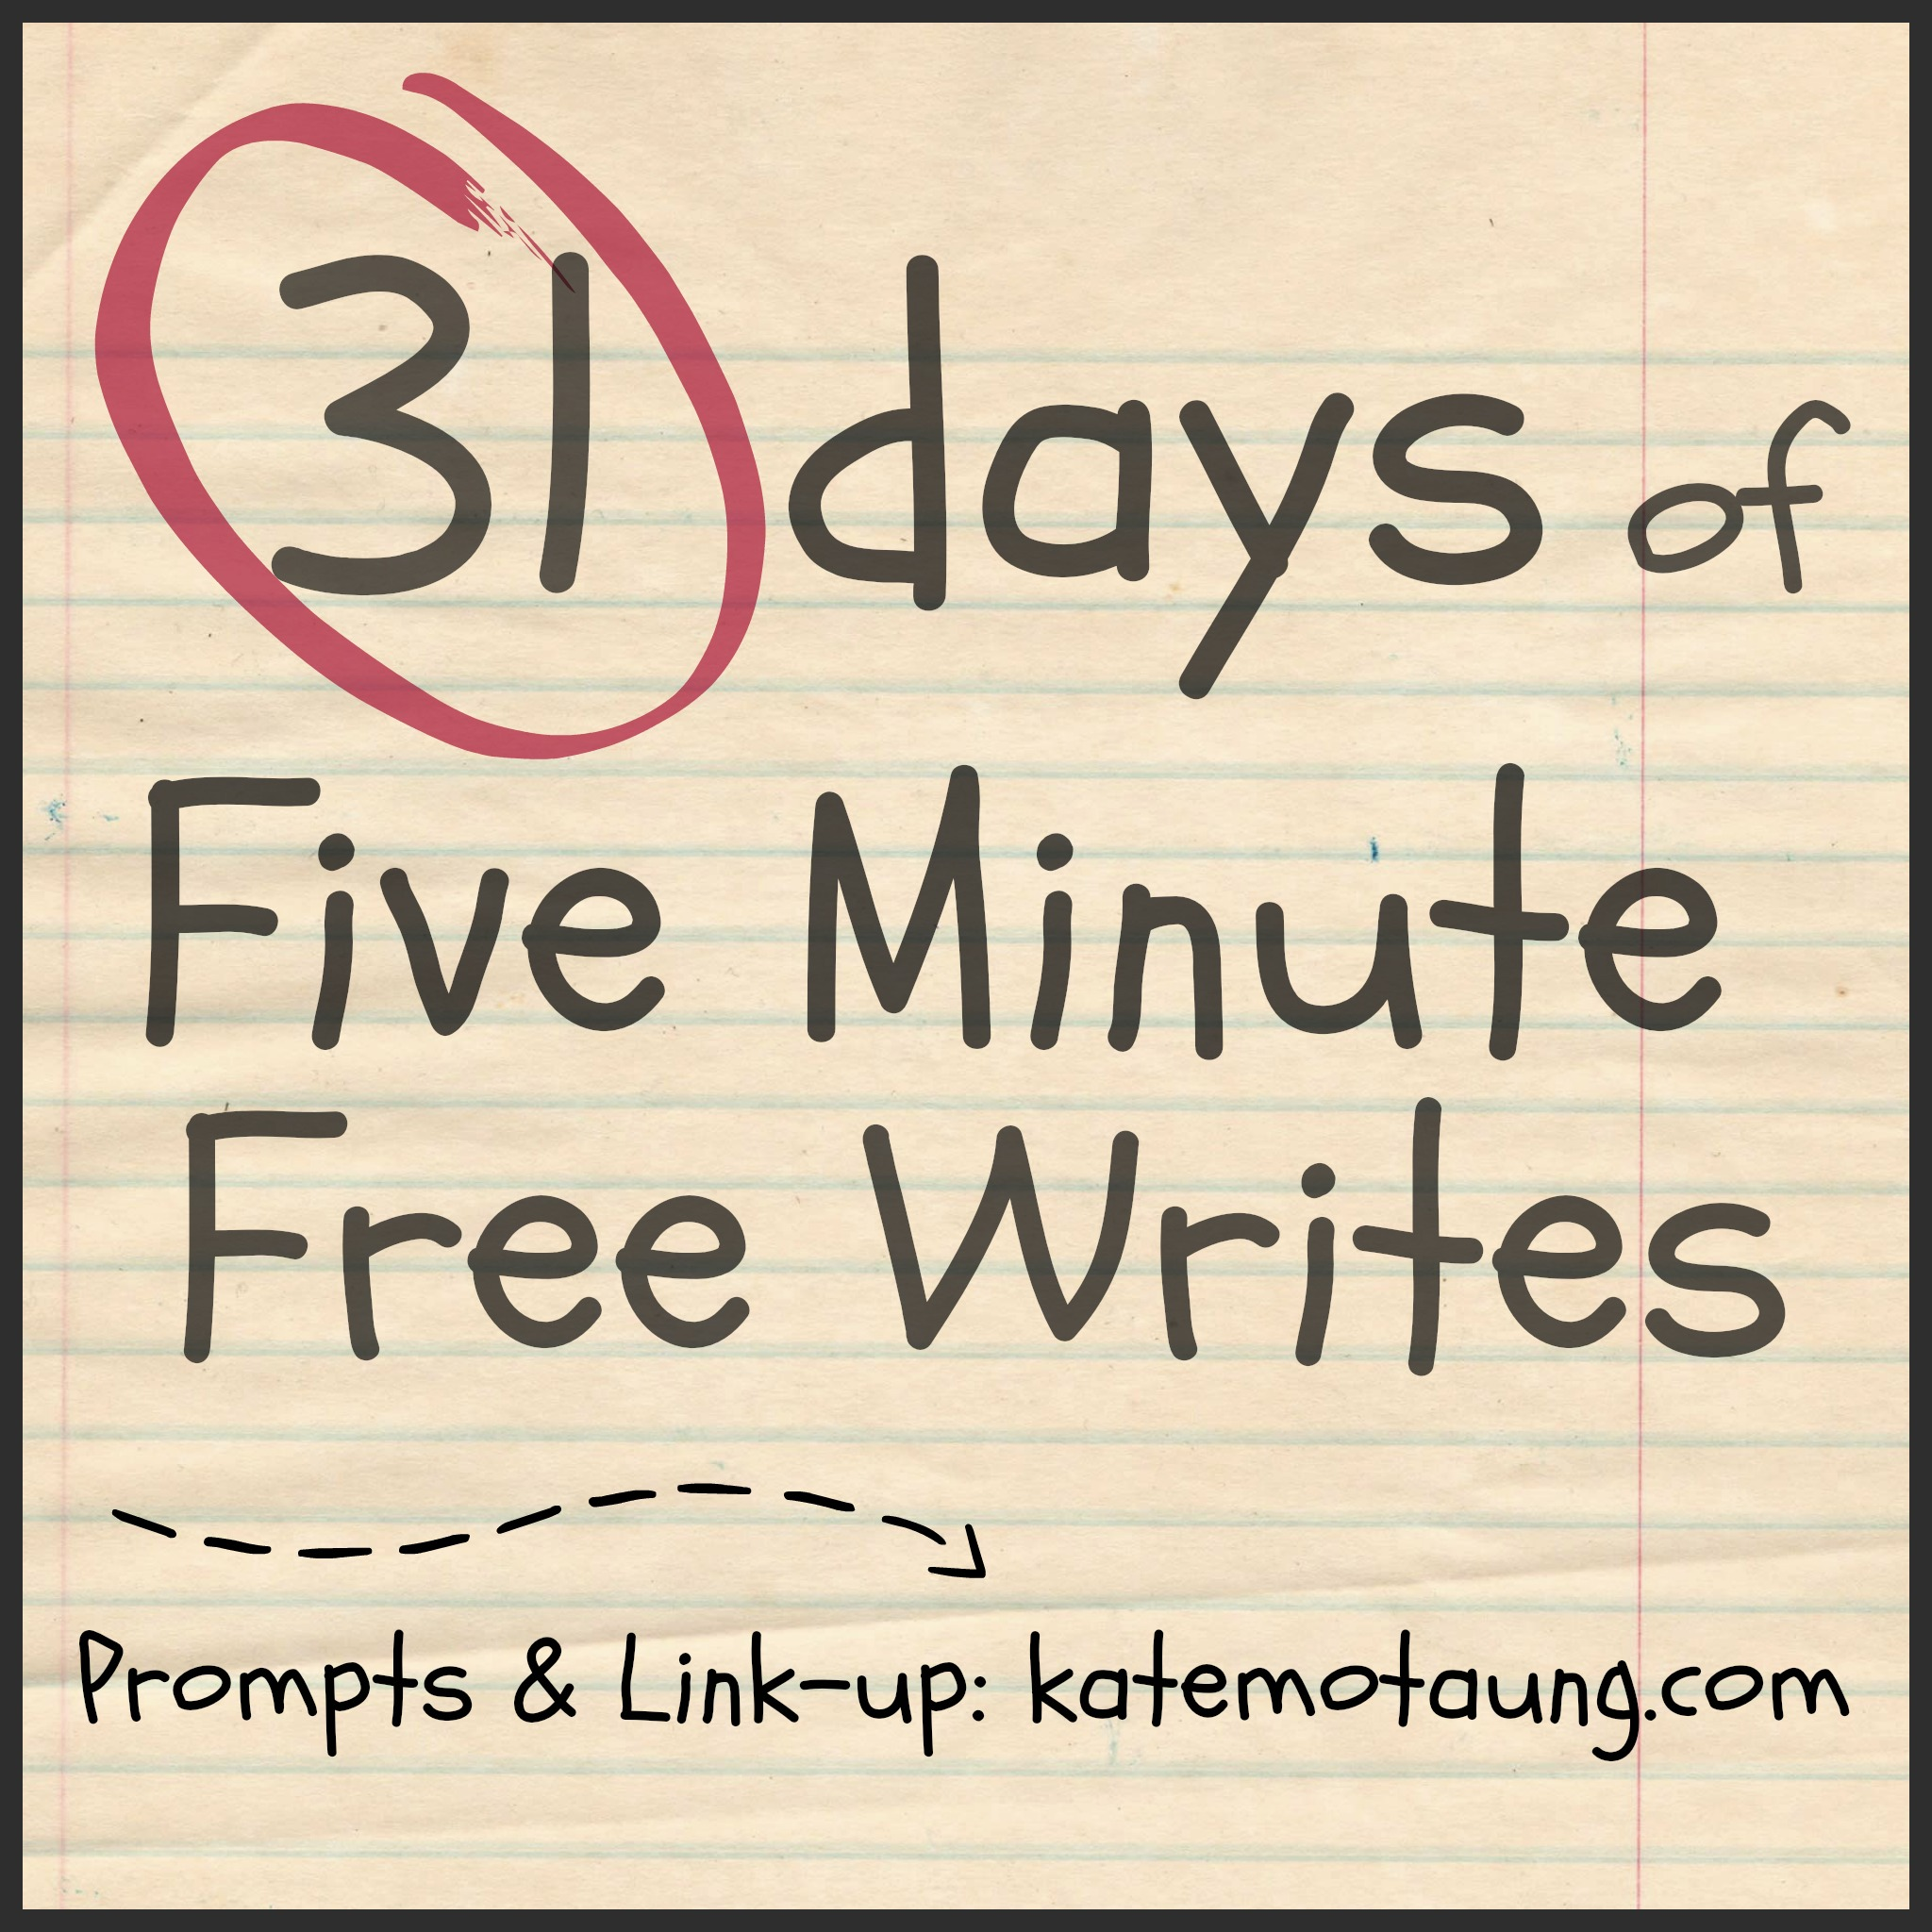 http://katemotaung.com/31-days-2/31-days-of-five-minute-free-writes-link-up-here/